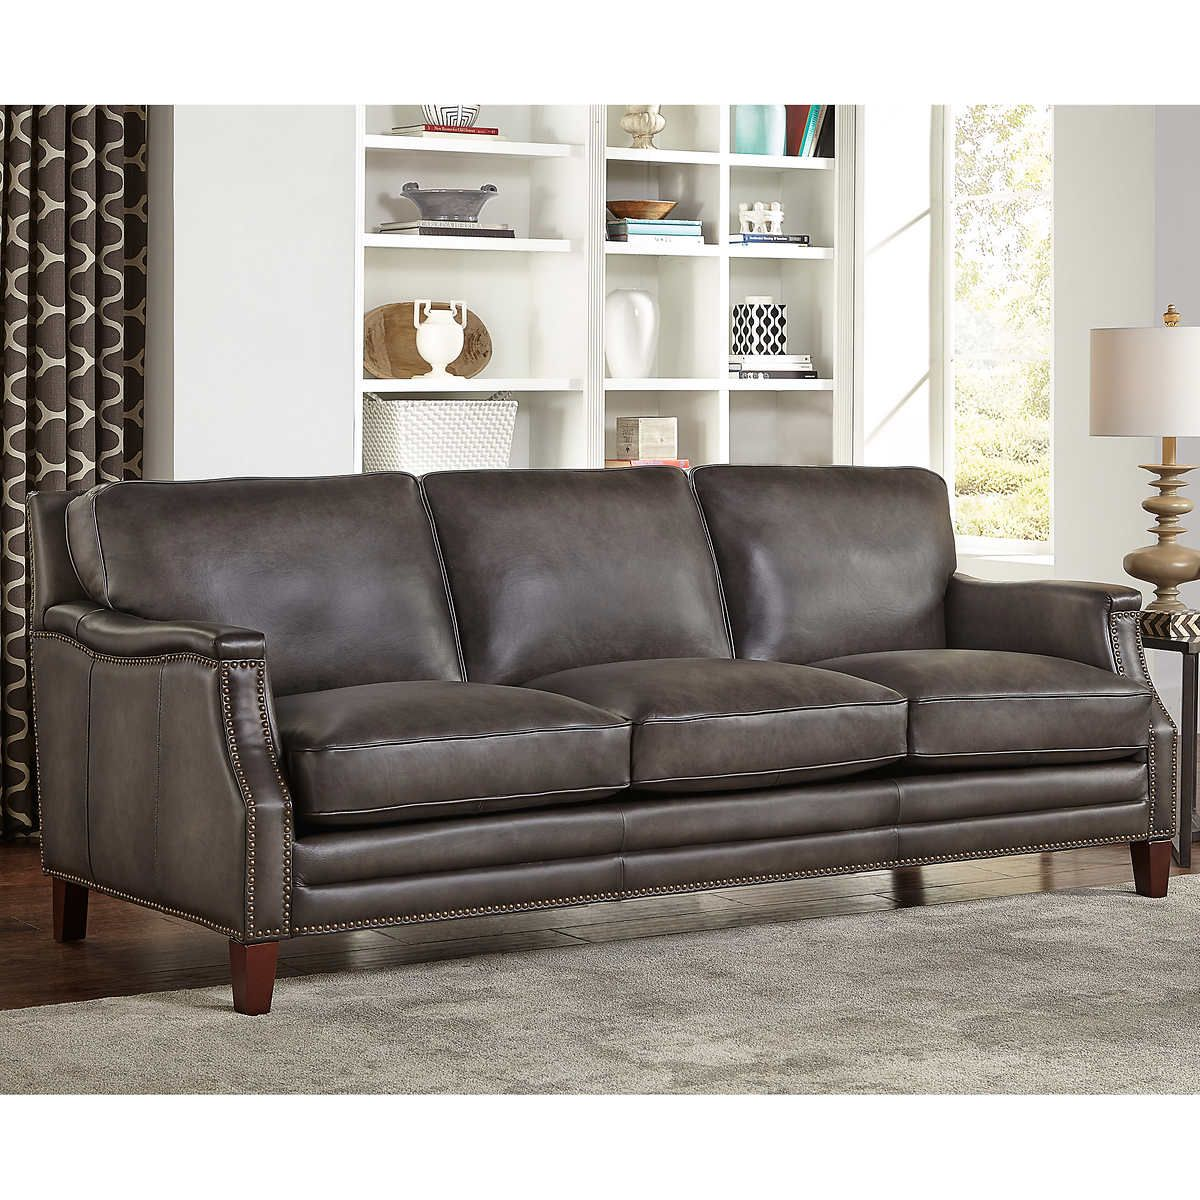 Best Edgewood Leather Sofa With Images Top Grain Leather 400 x 300